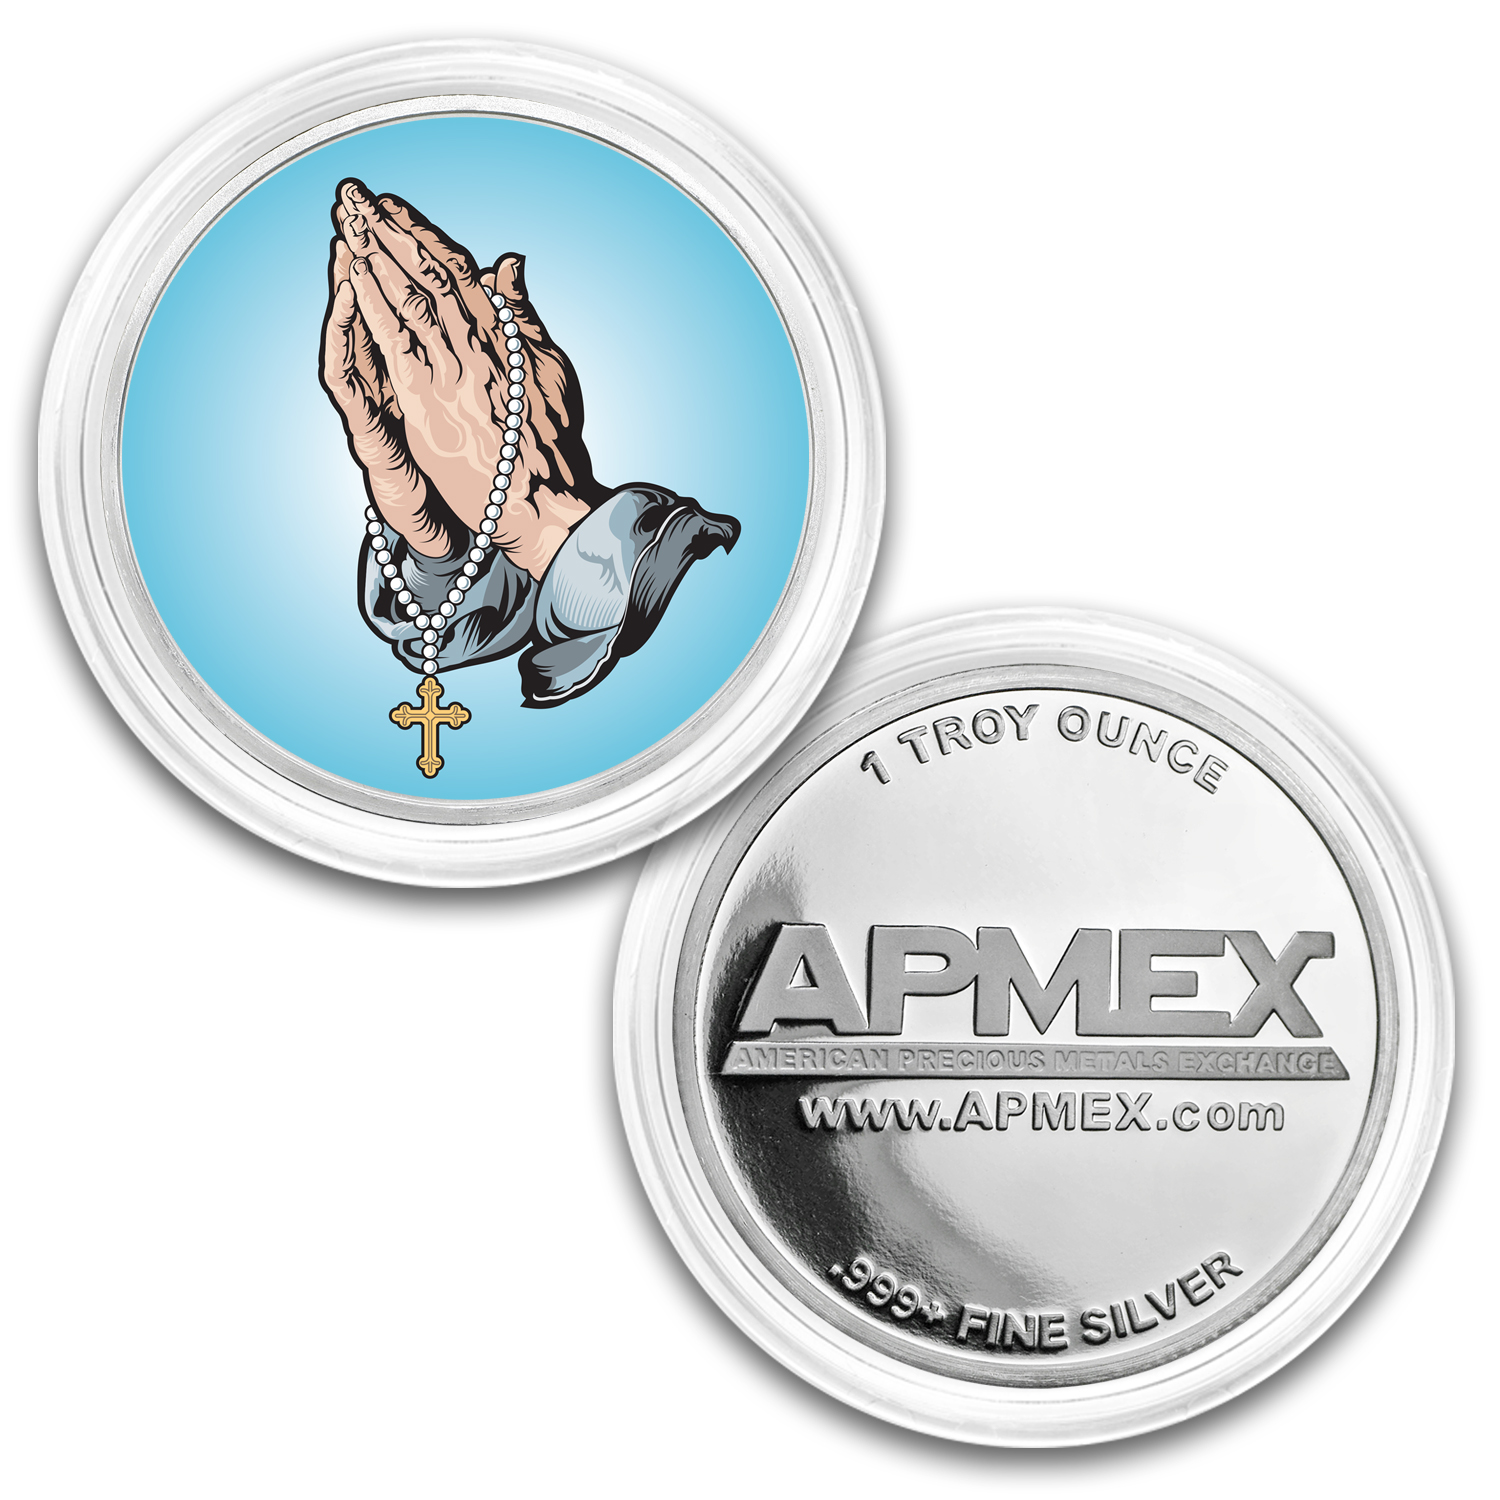 1 oz Silver Colorized Round - APMEX (Praying Hands)